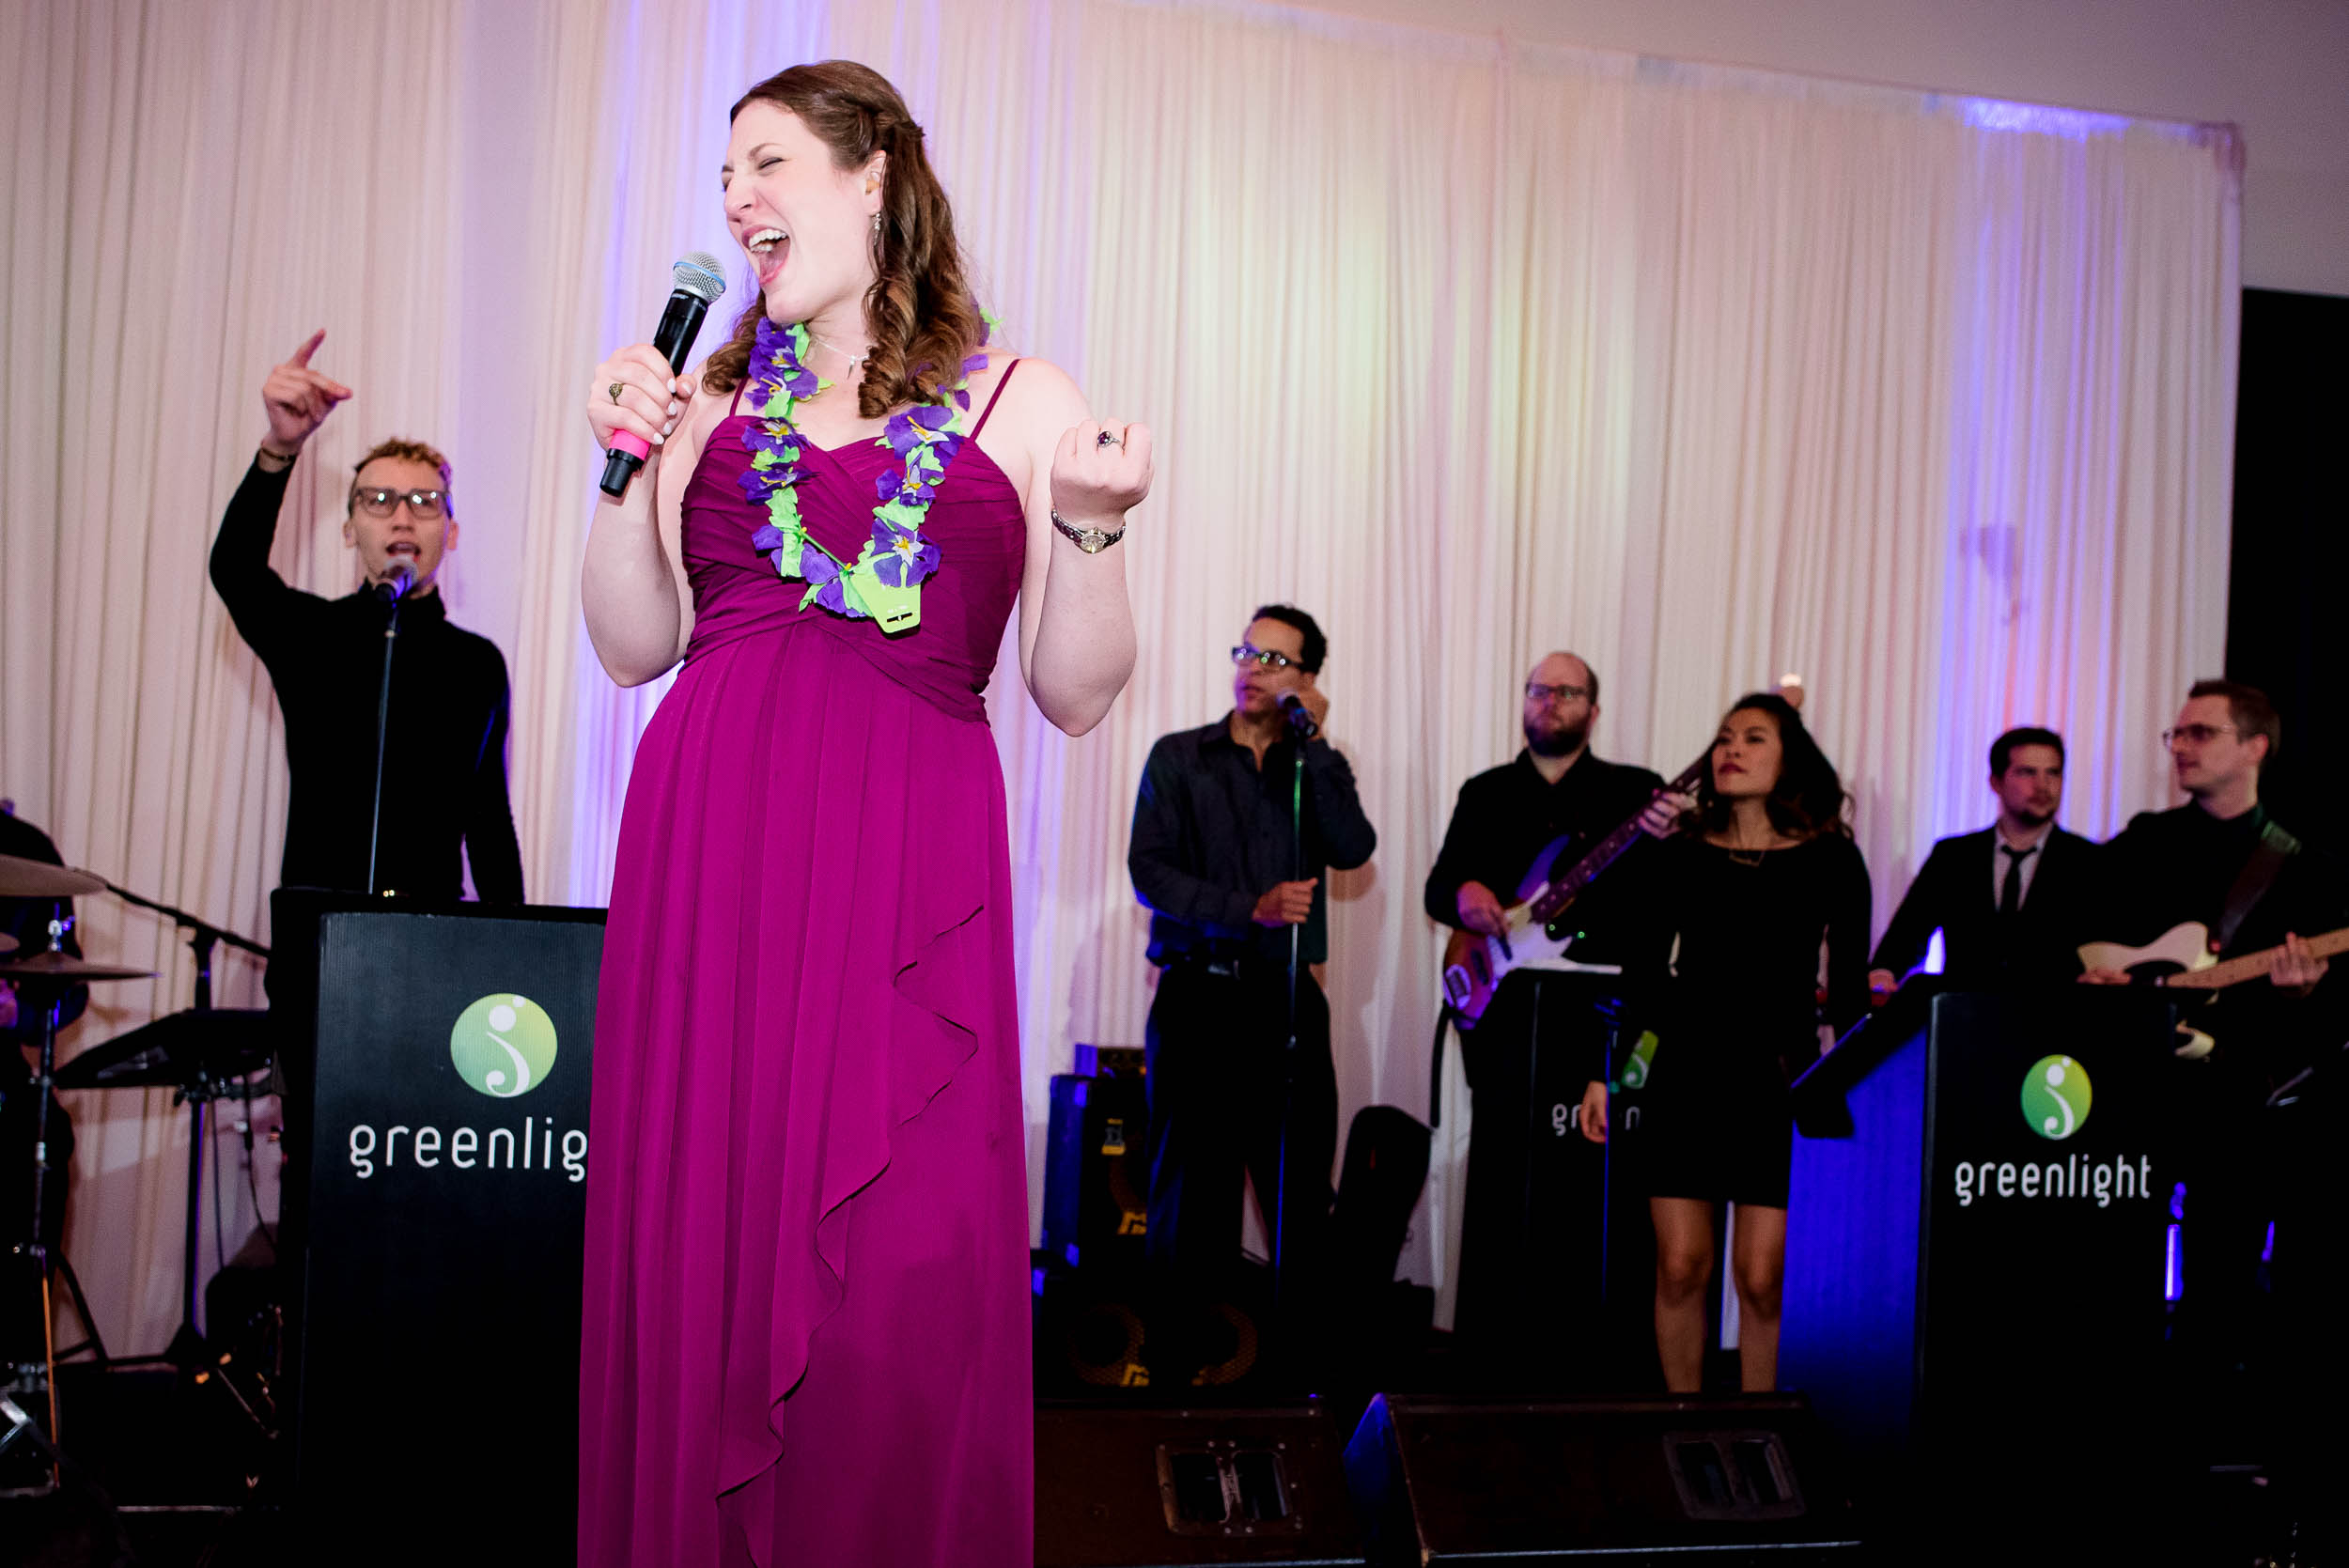 Maid of honor sings with Greenlight band during an Independence Grove Chicago wedding.